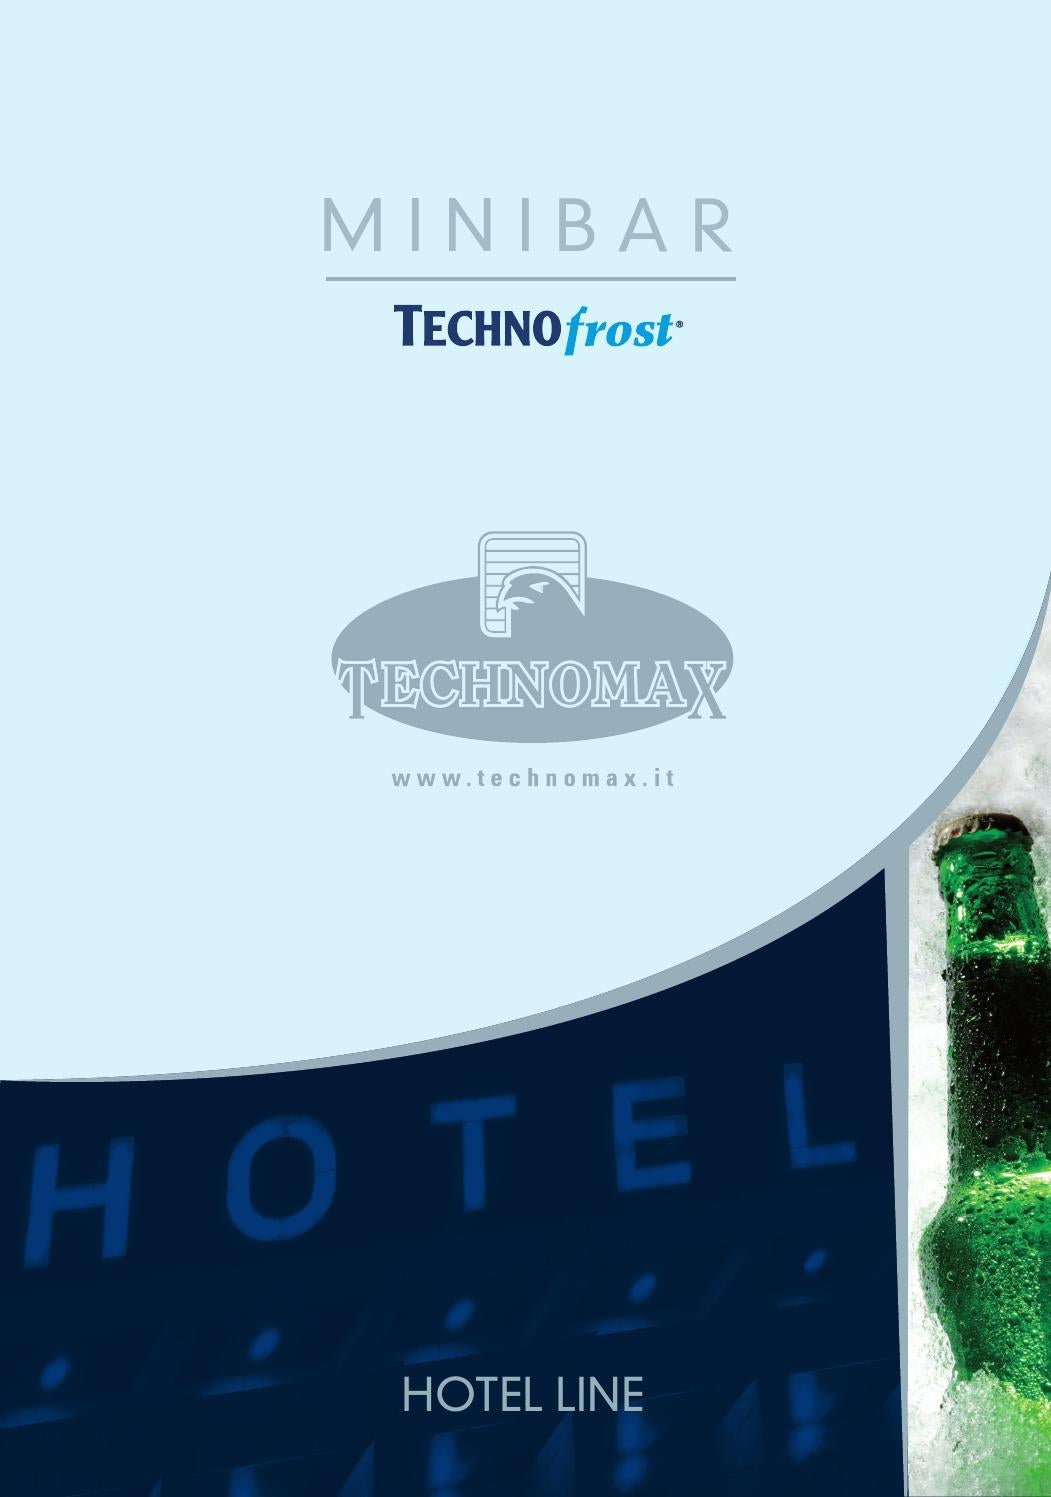 Catalogo minibar 2015 by technomax casseforti issuu for Progress catalogo 2015